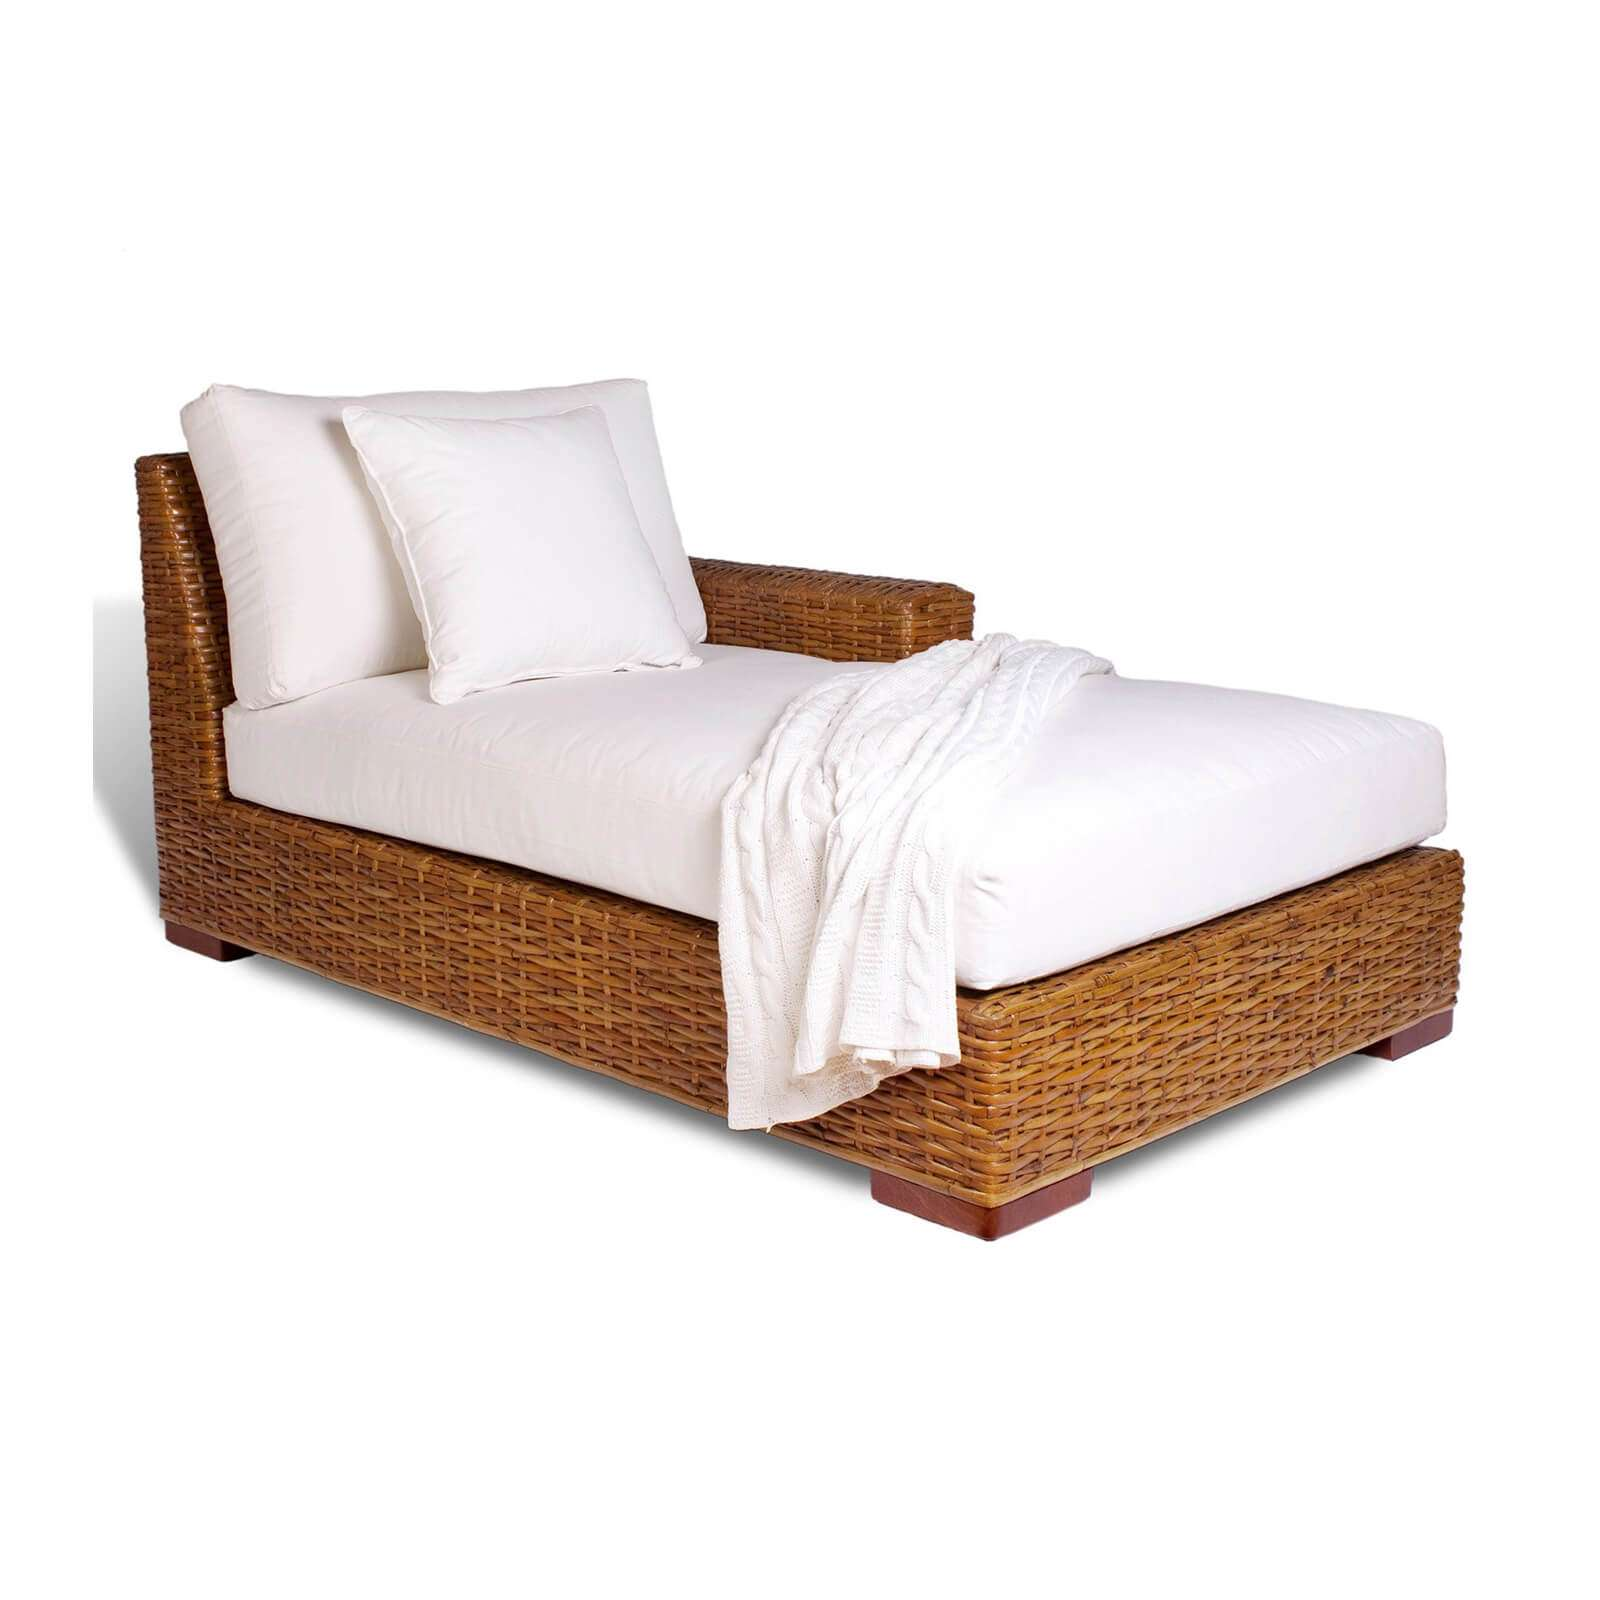 PANAMA DAYBED RIGHT - STUART MEMBERY HOME COLLECTION